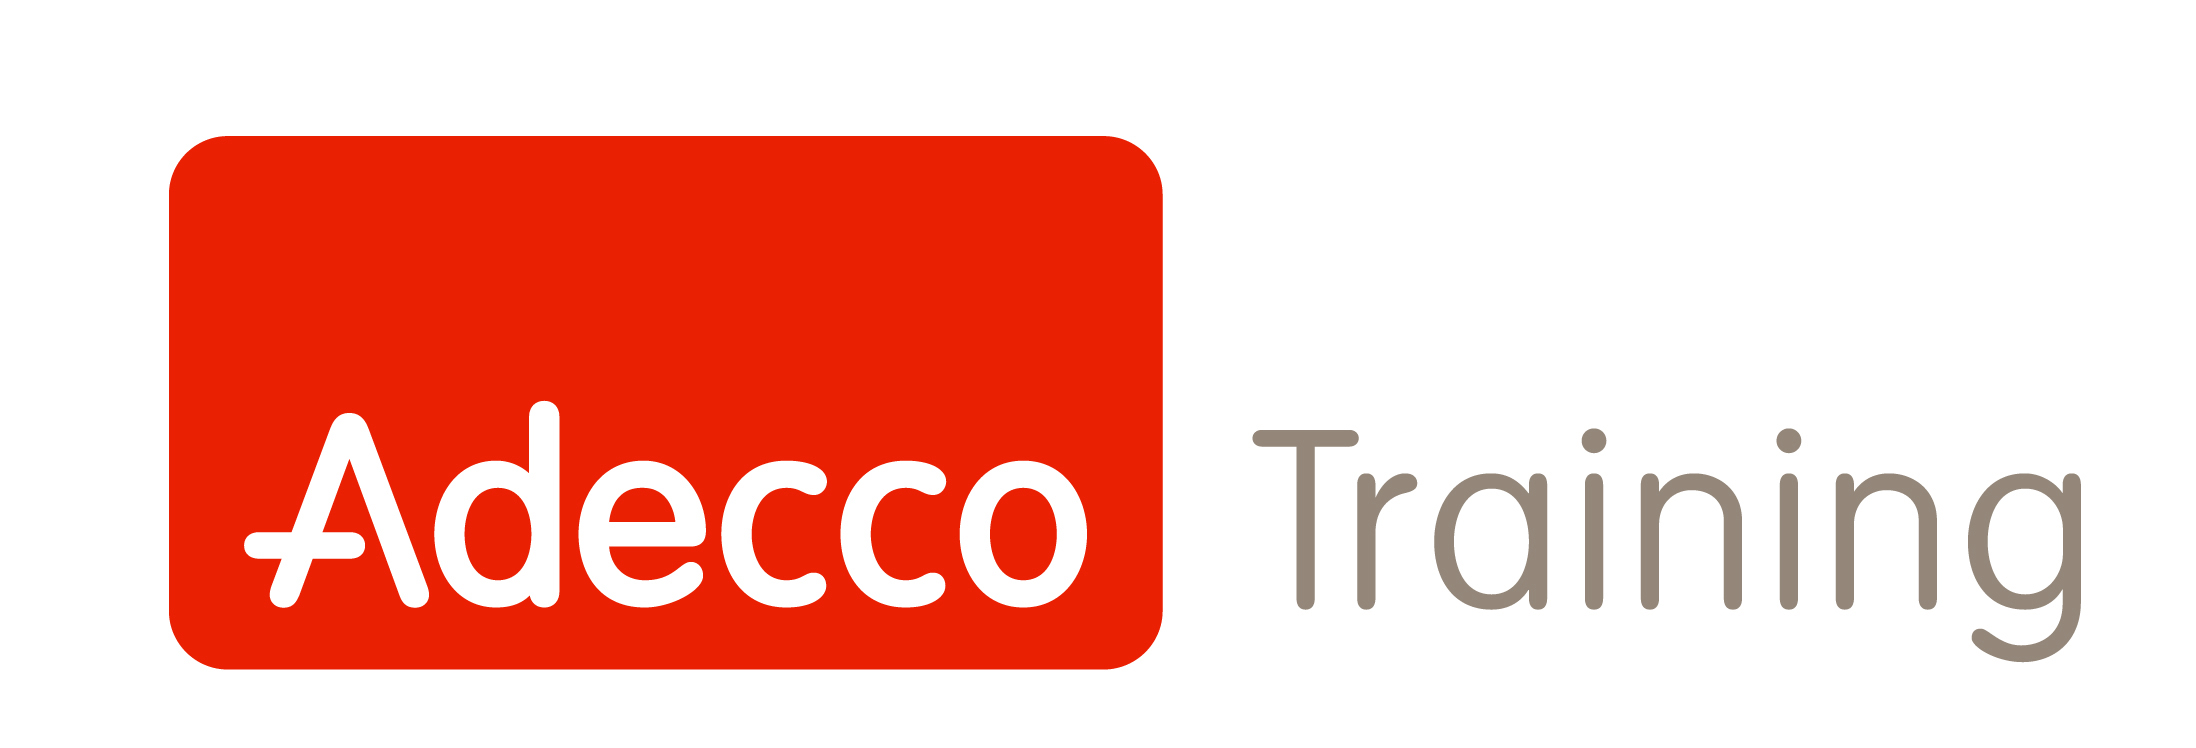 adeccO_TRAINING